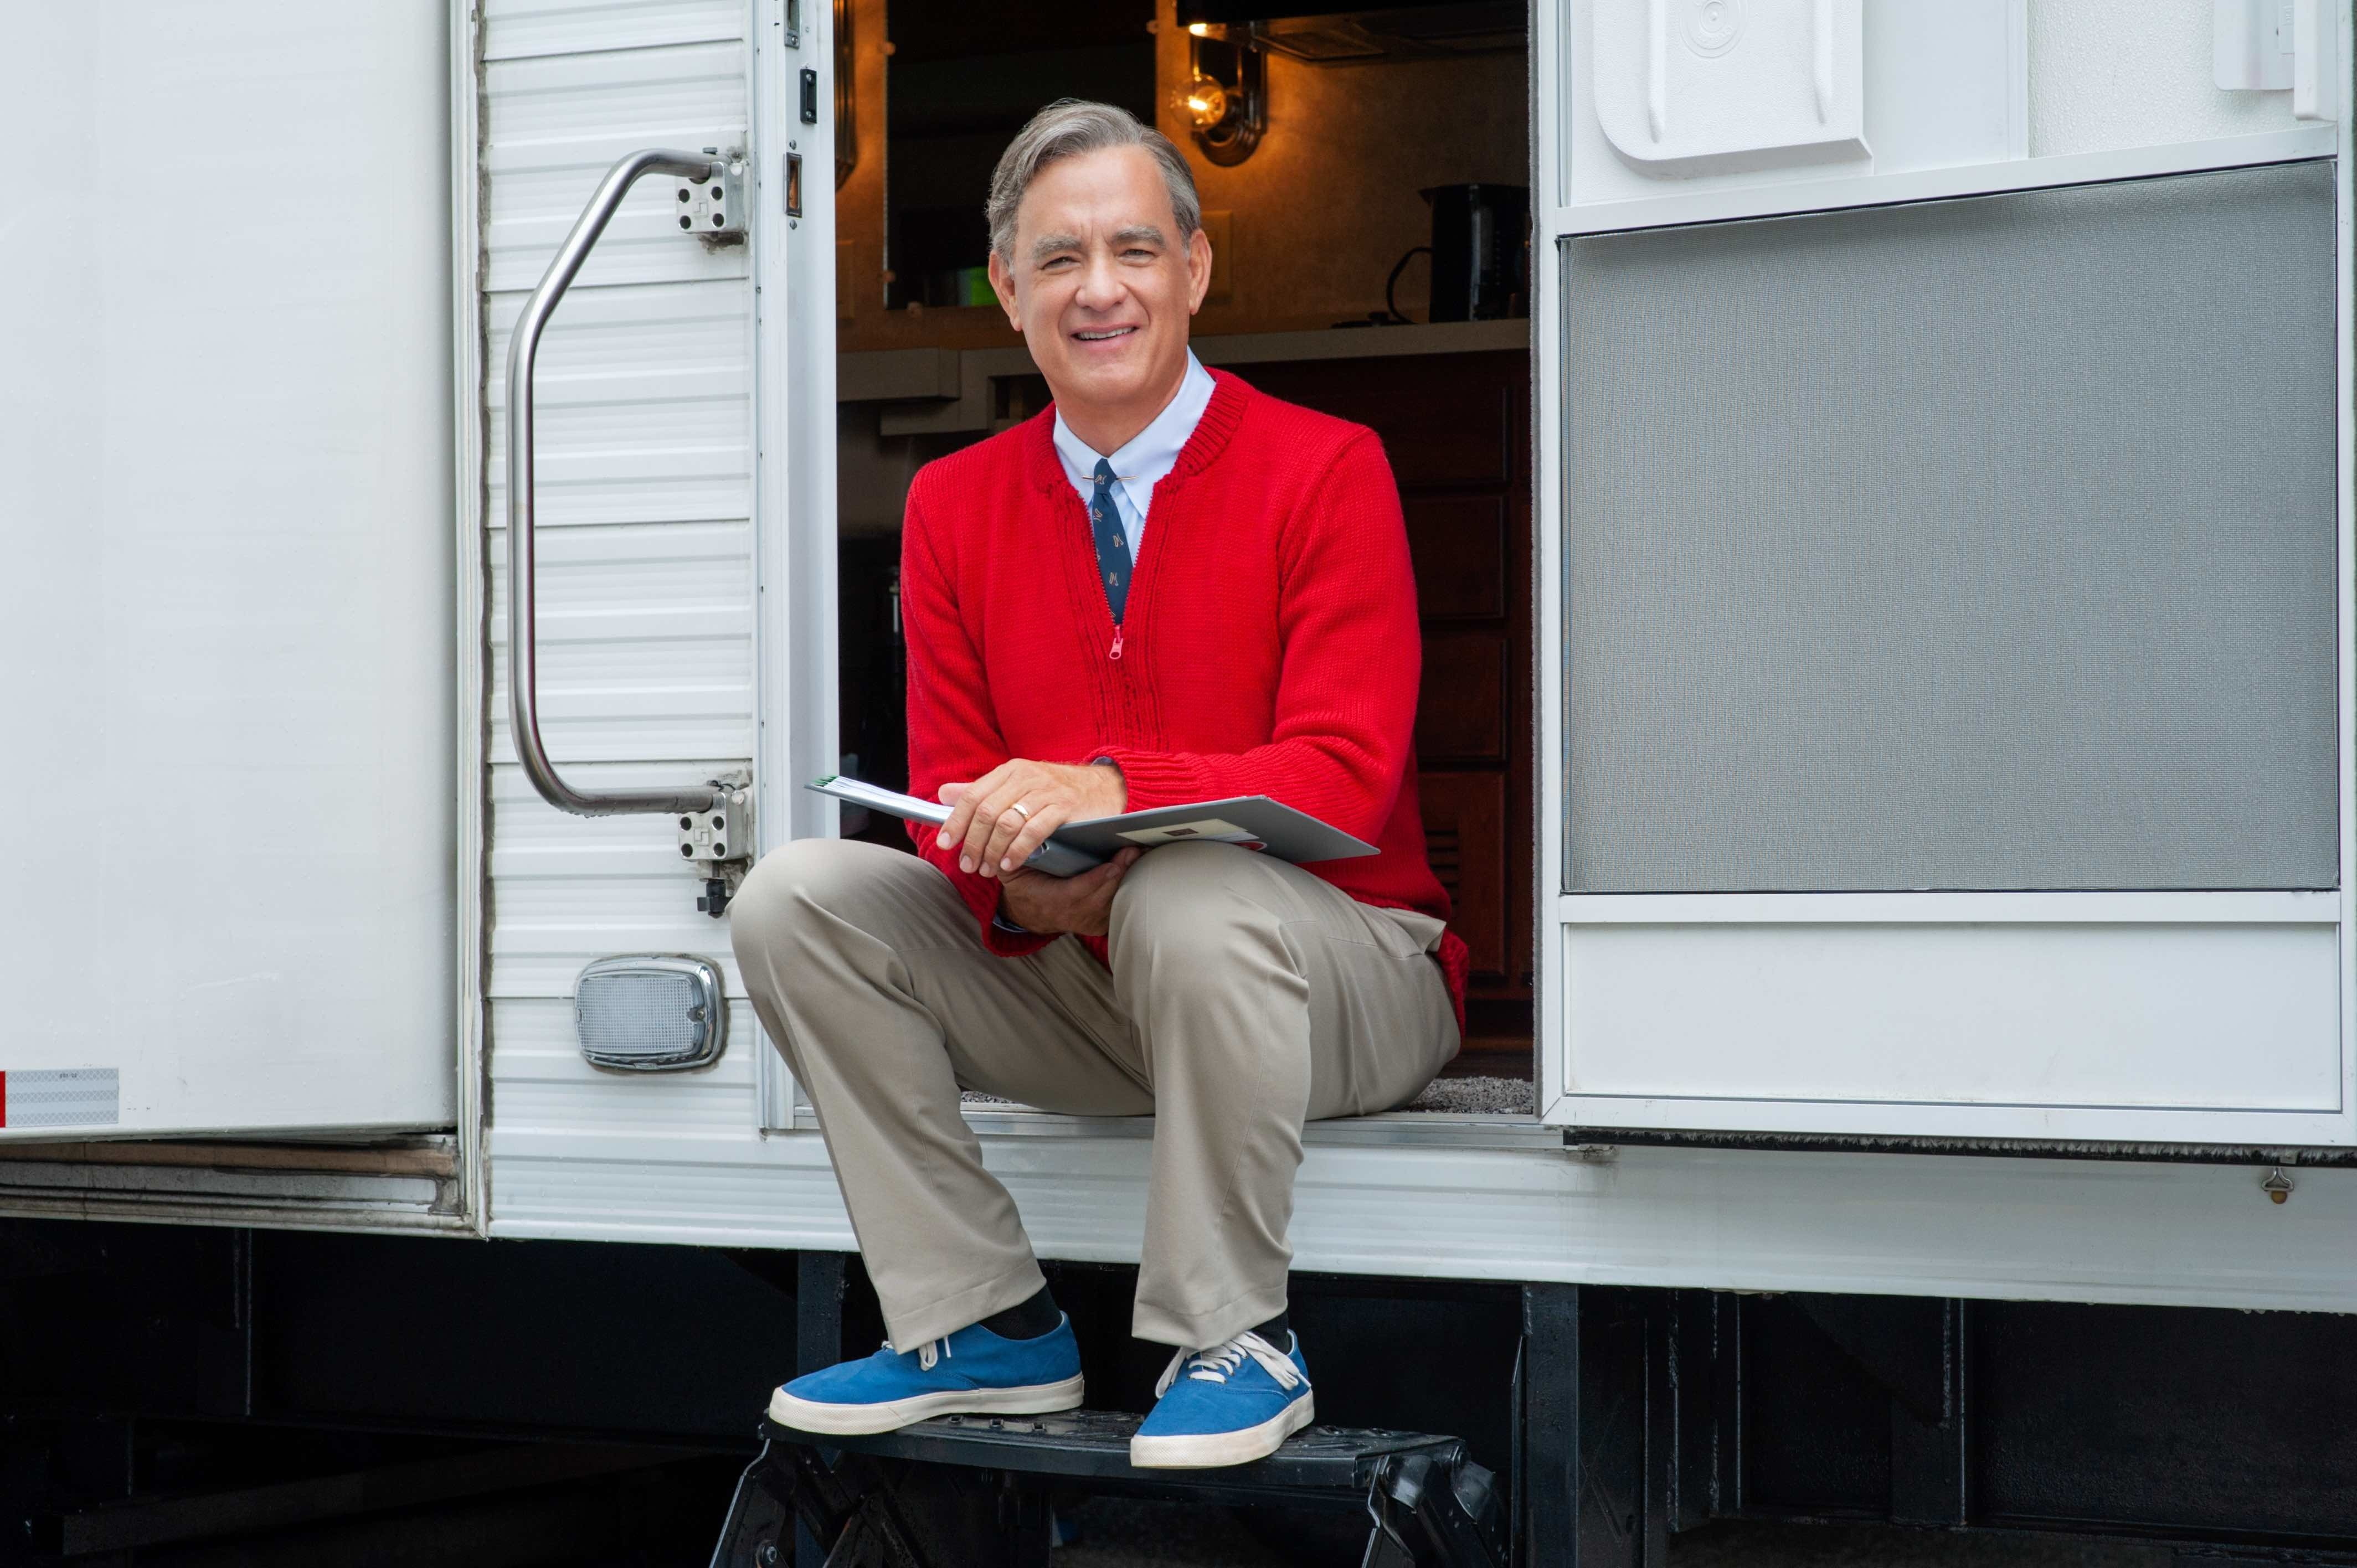 Here's Your First Look At Tom Hanks As Mr. Rogers